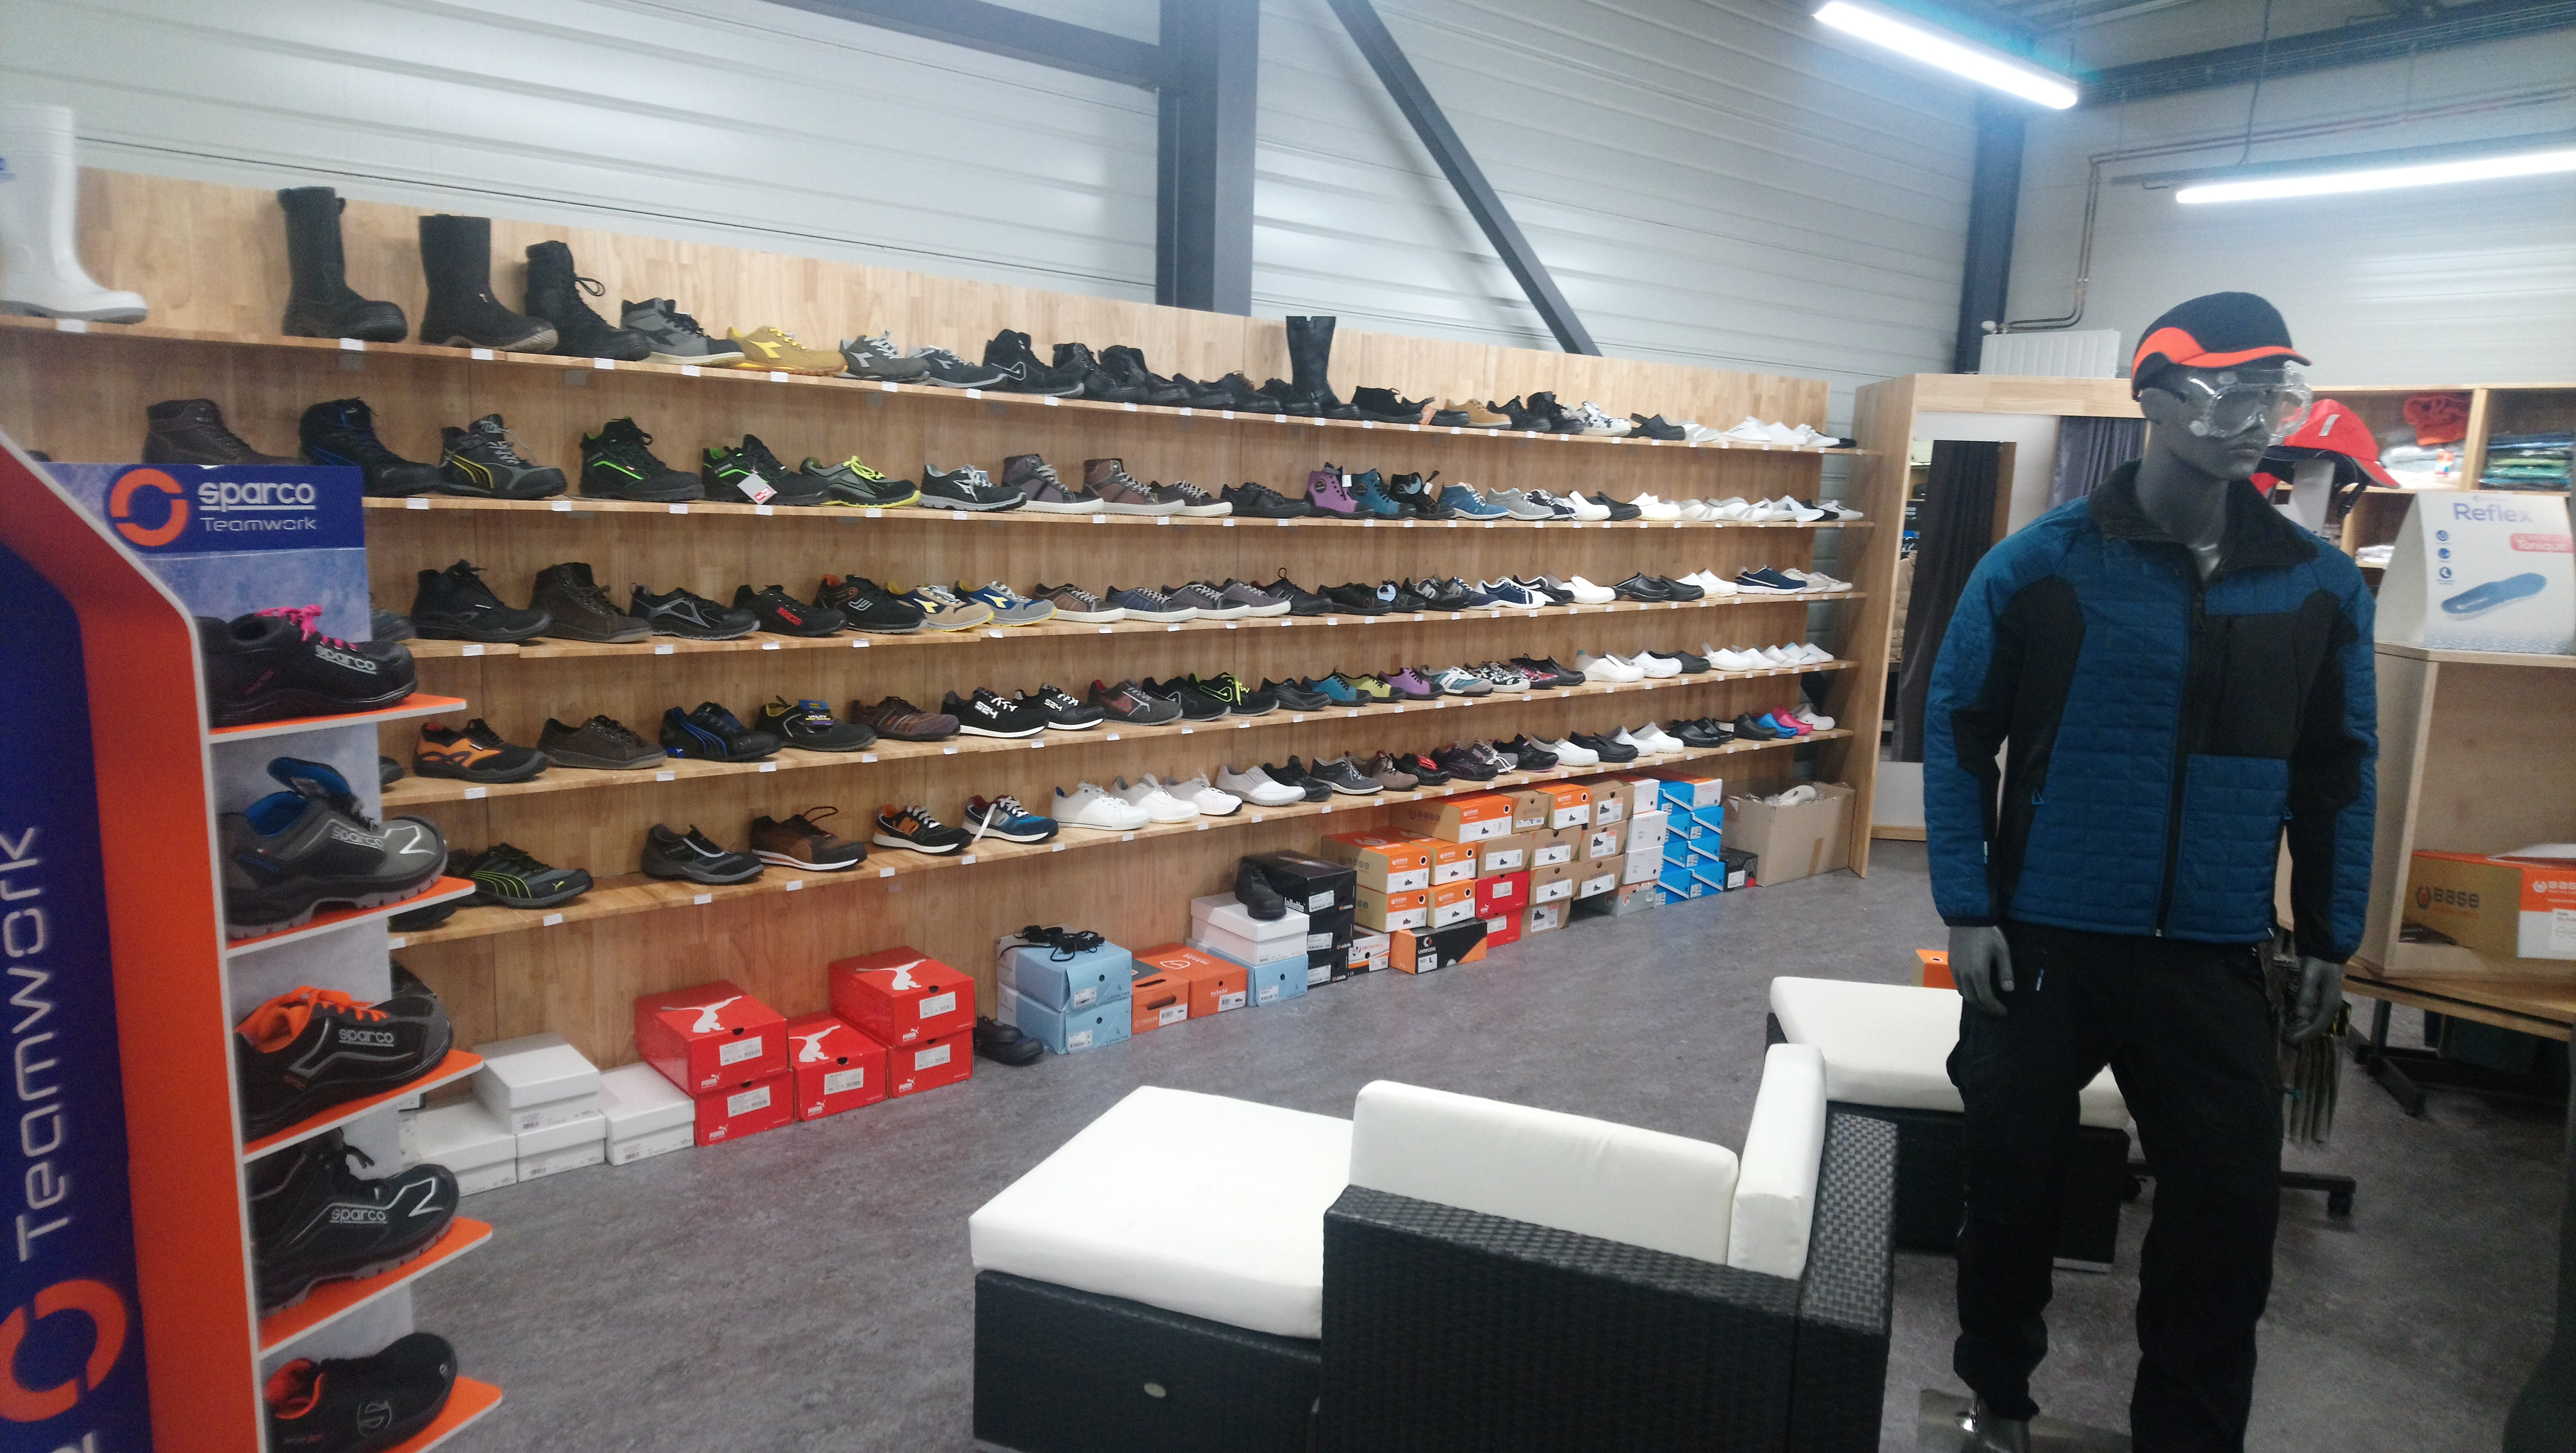 tely habit pro mur chaussures securite magasin brives charensac